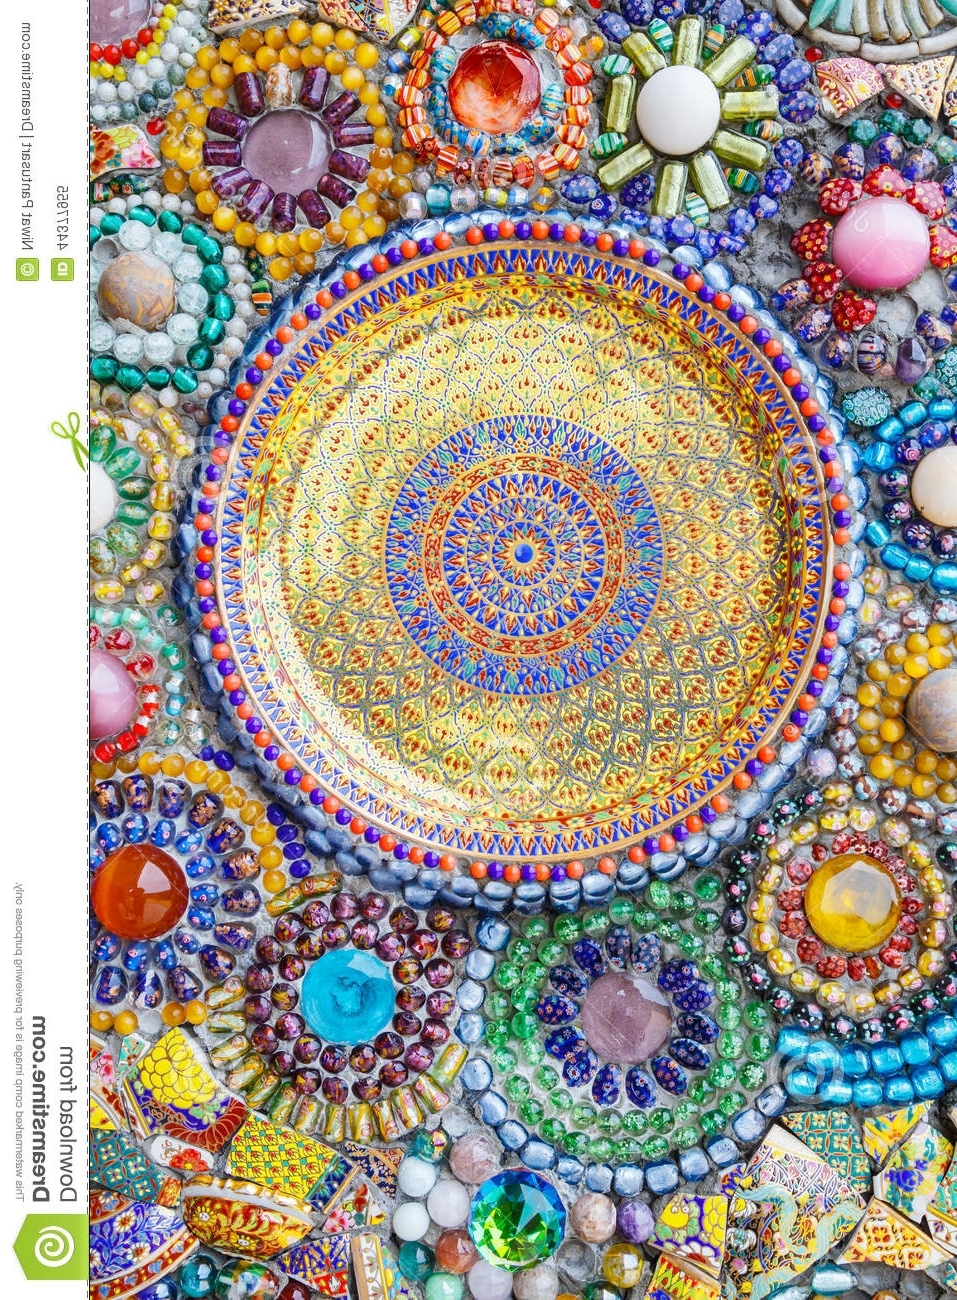 Favorite Colorful Mosaic Art Abstract Wall Background Stock Image – Image With Regard To Abstract Mosaic Art On Wall (View 5 of 15)